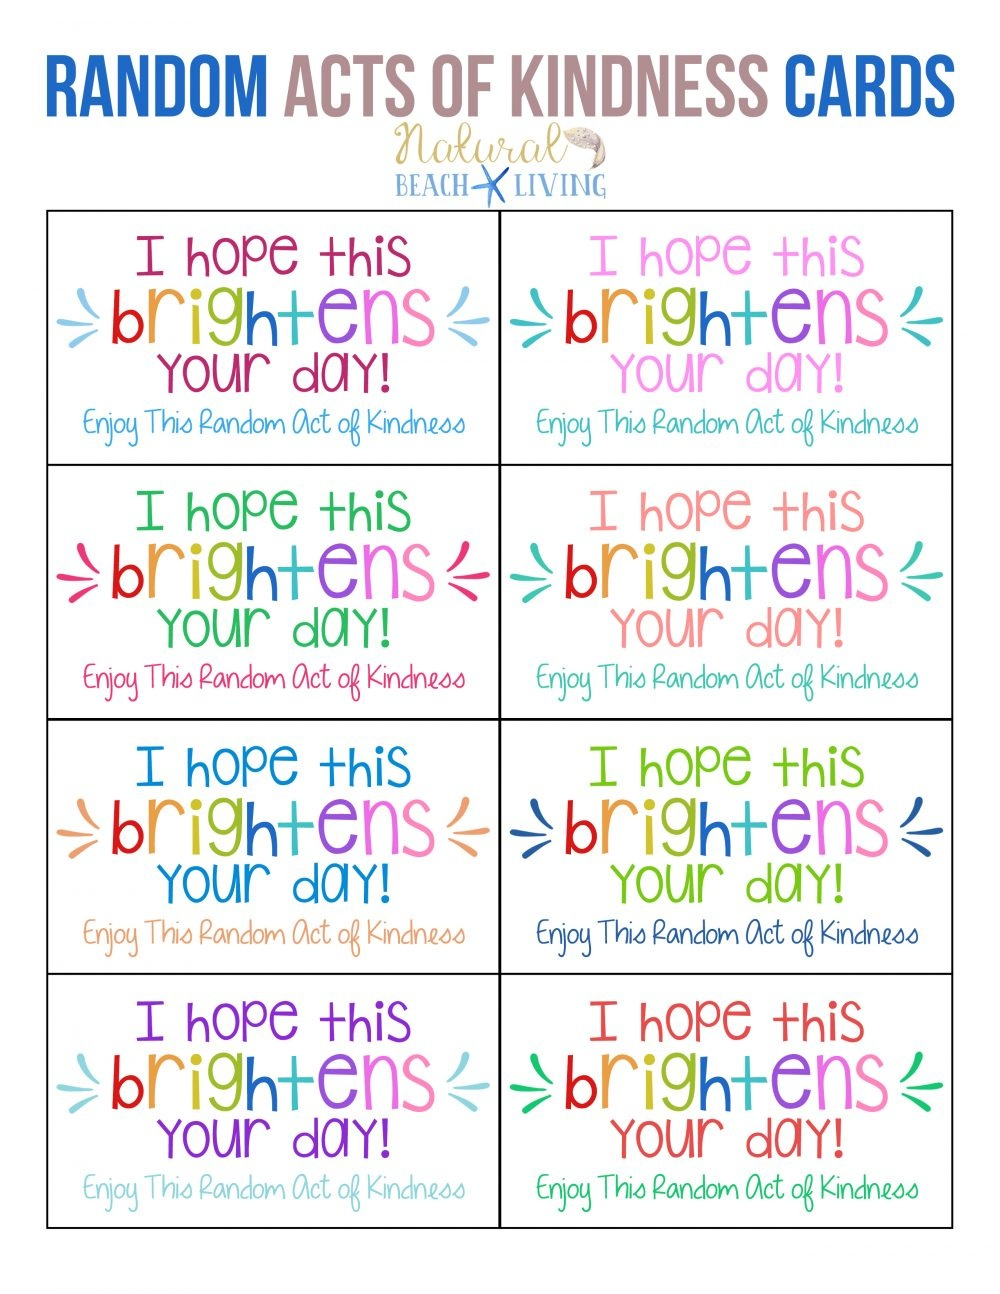 The Best Random Acts Of Kindness Printable Cards Free - Natural - Free Printable Compliment Cards